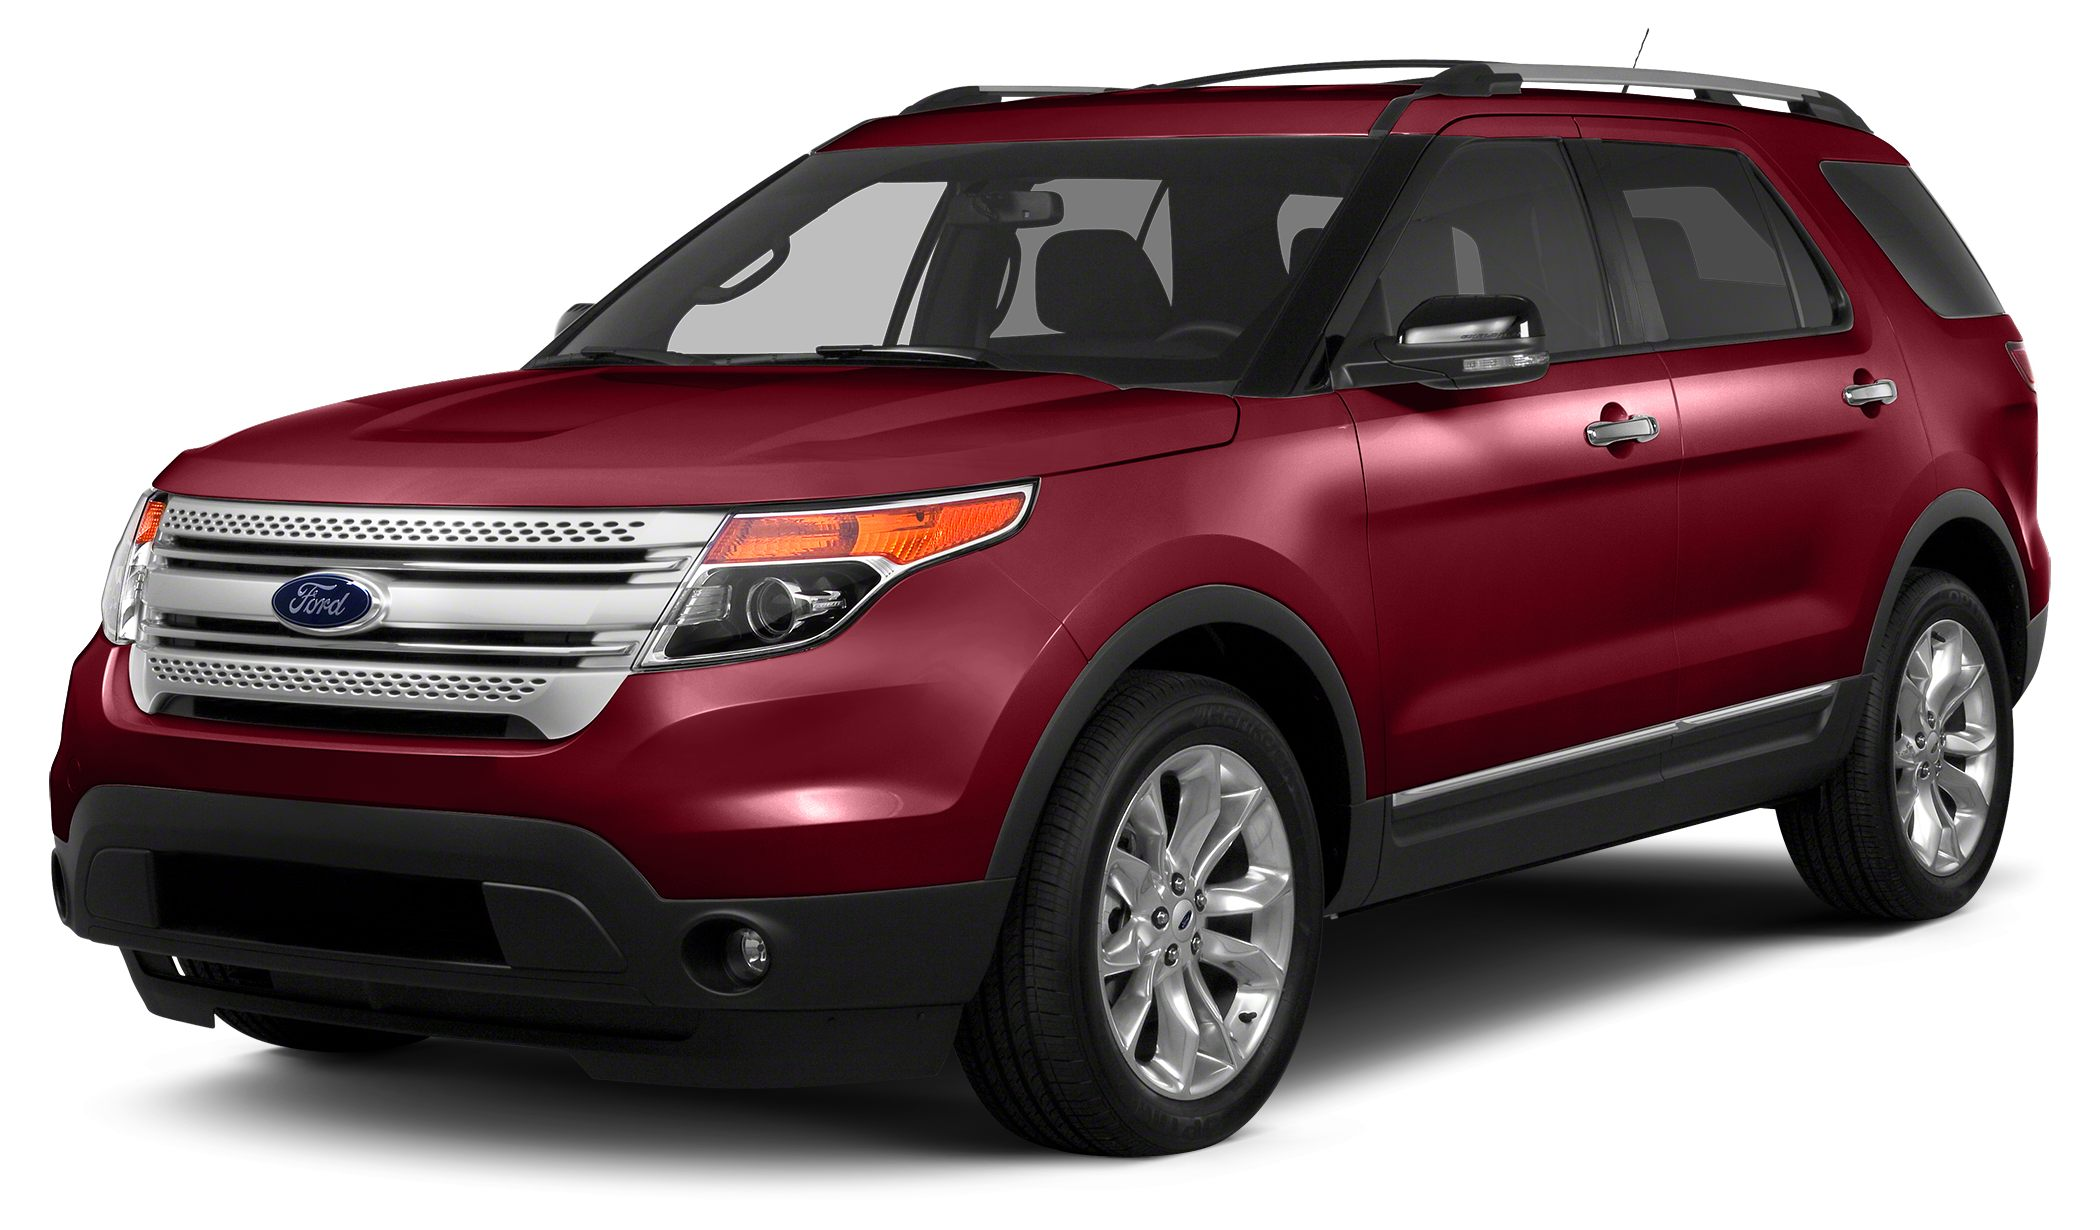 2015 Ford Explorer XLT Color Red Stock C20500 VIN 1FM5K8D88FGC20500